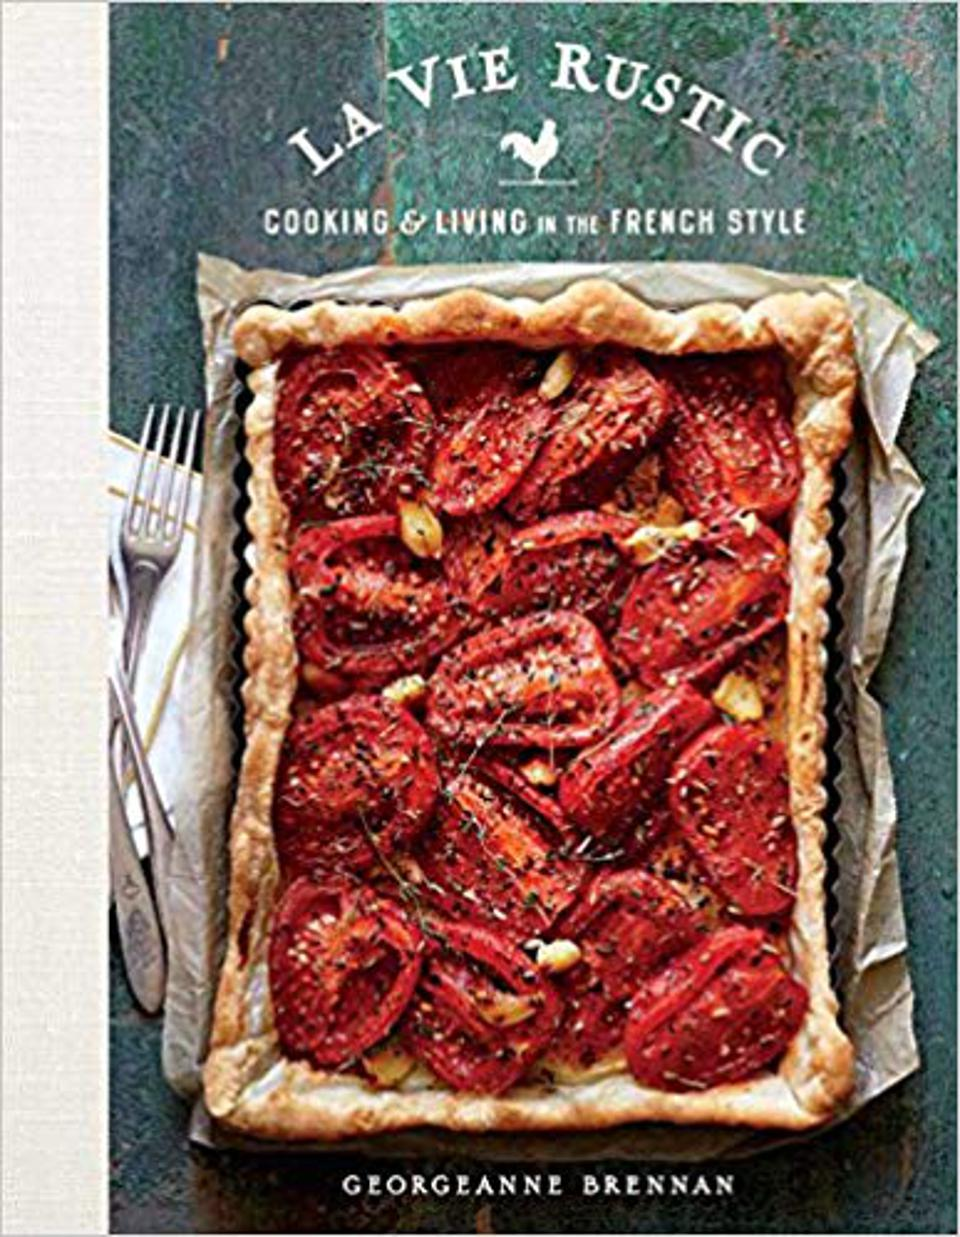 Top French Cookbooks of All Time